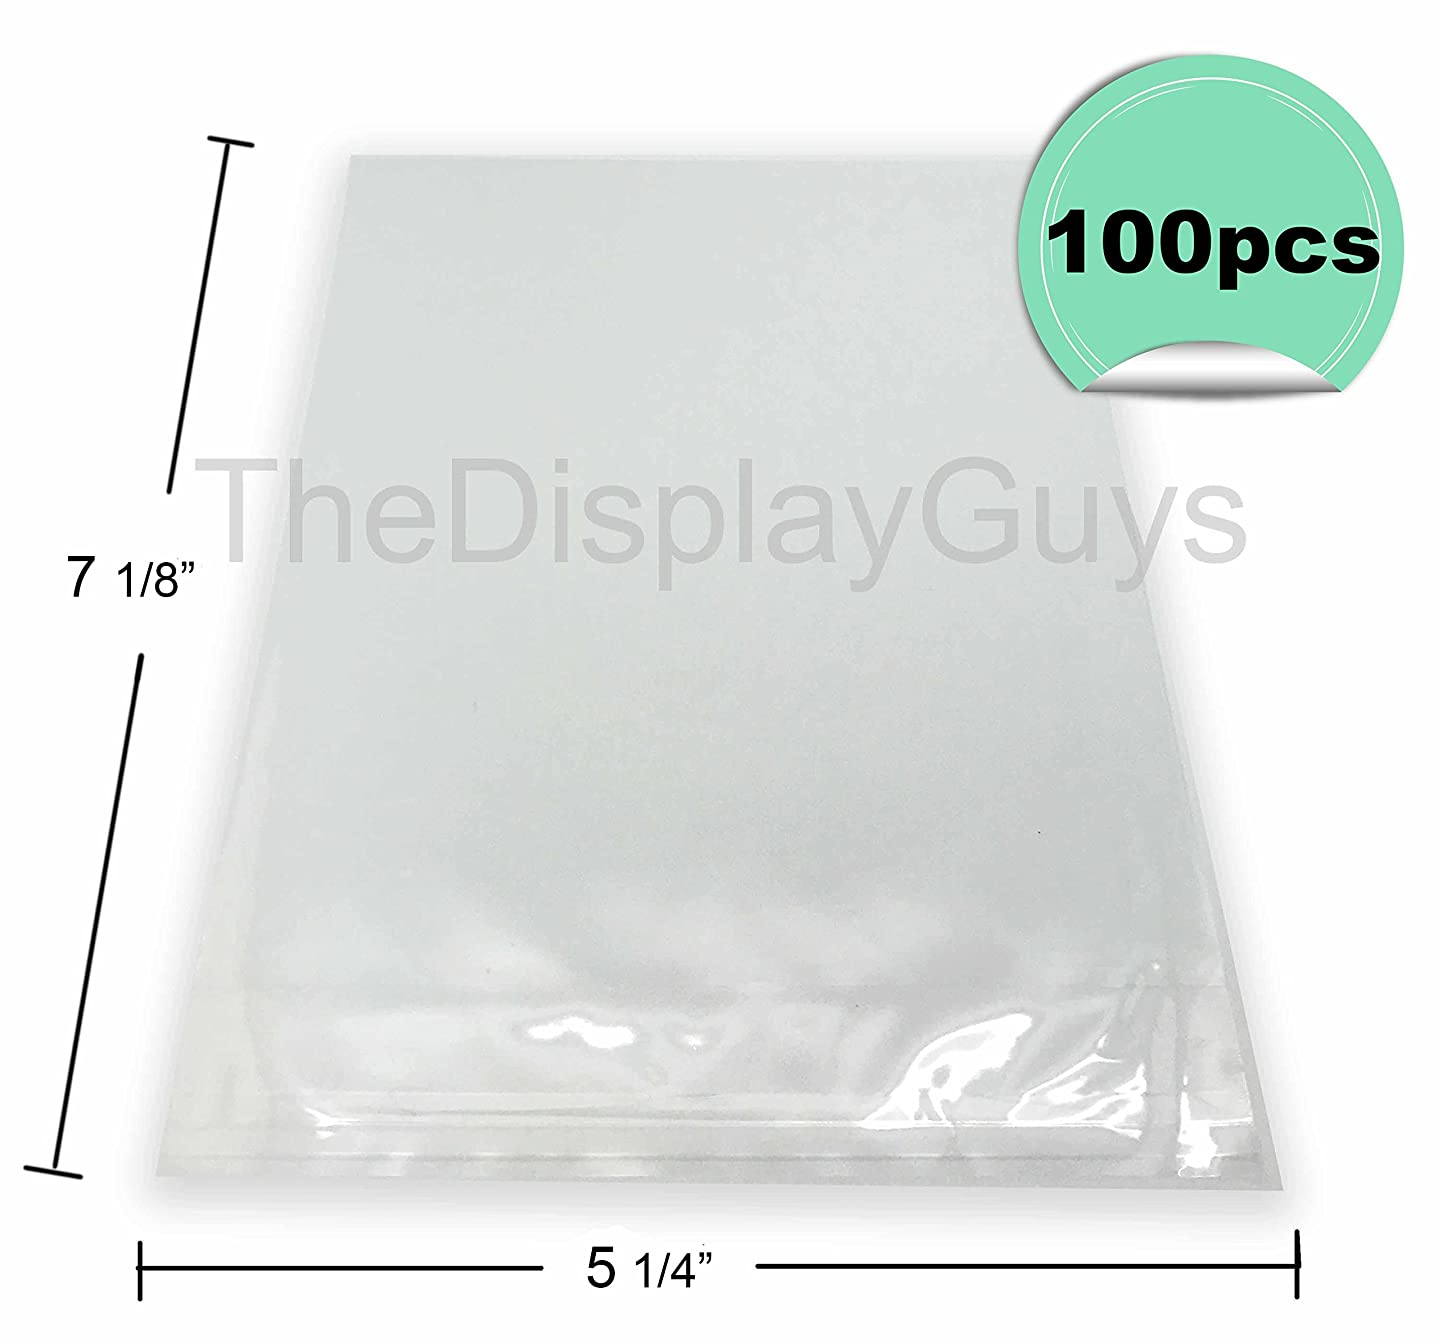 "The Display Guys, 100 Pcs 5 ?"" x 7 1/8"" Clear Self Adhesive Plastic Bags for 5"